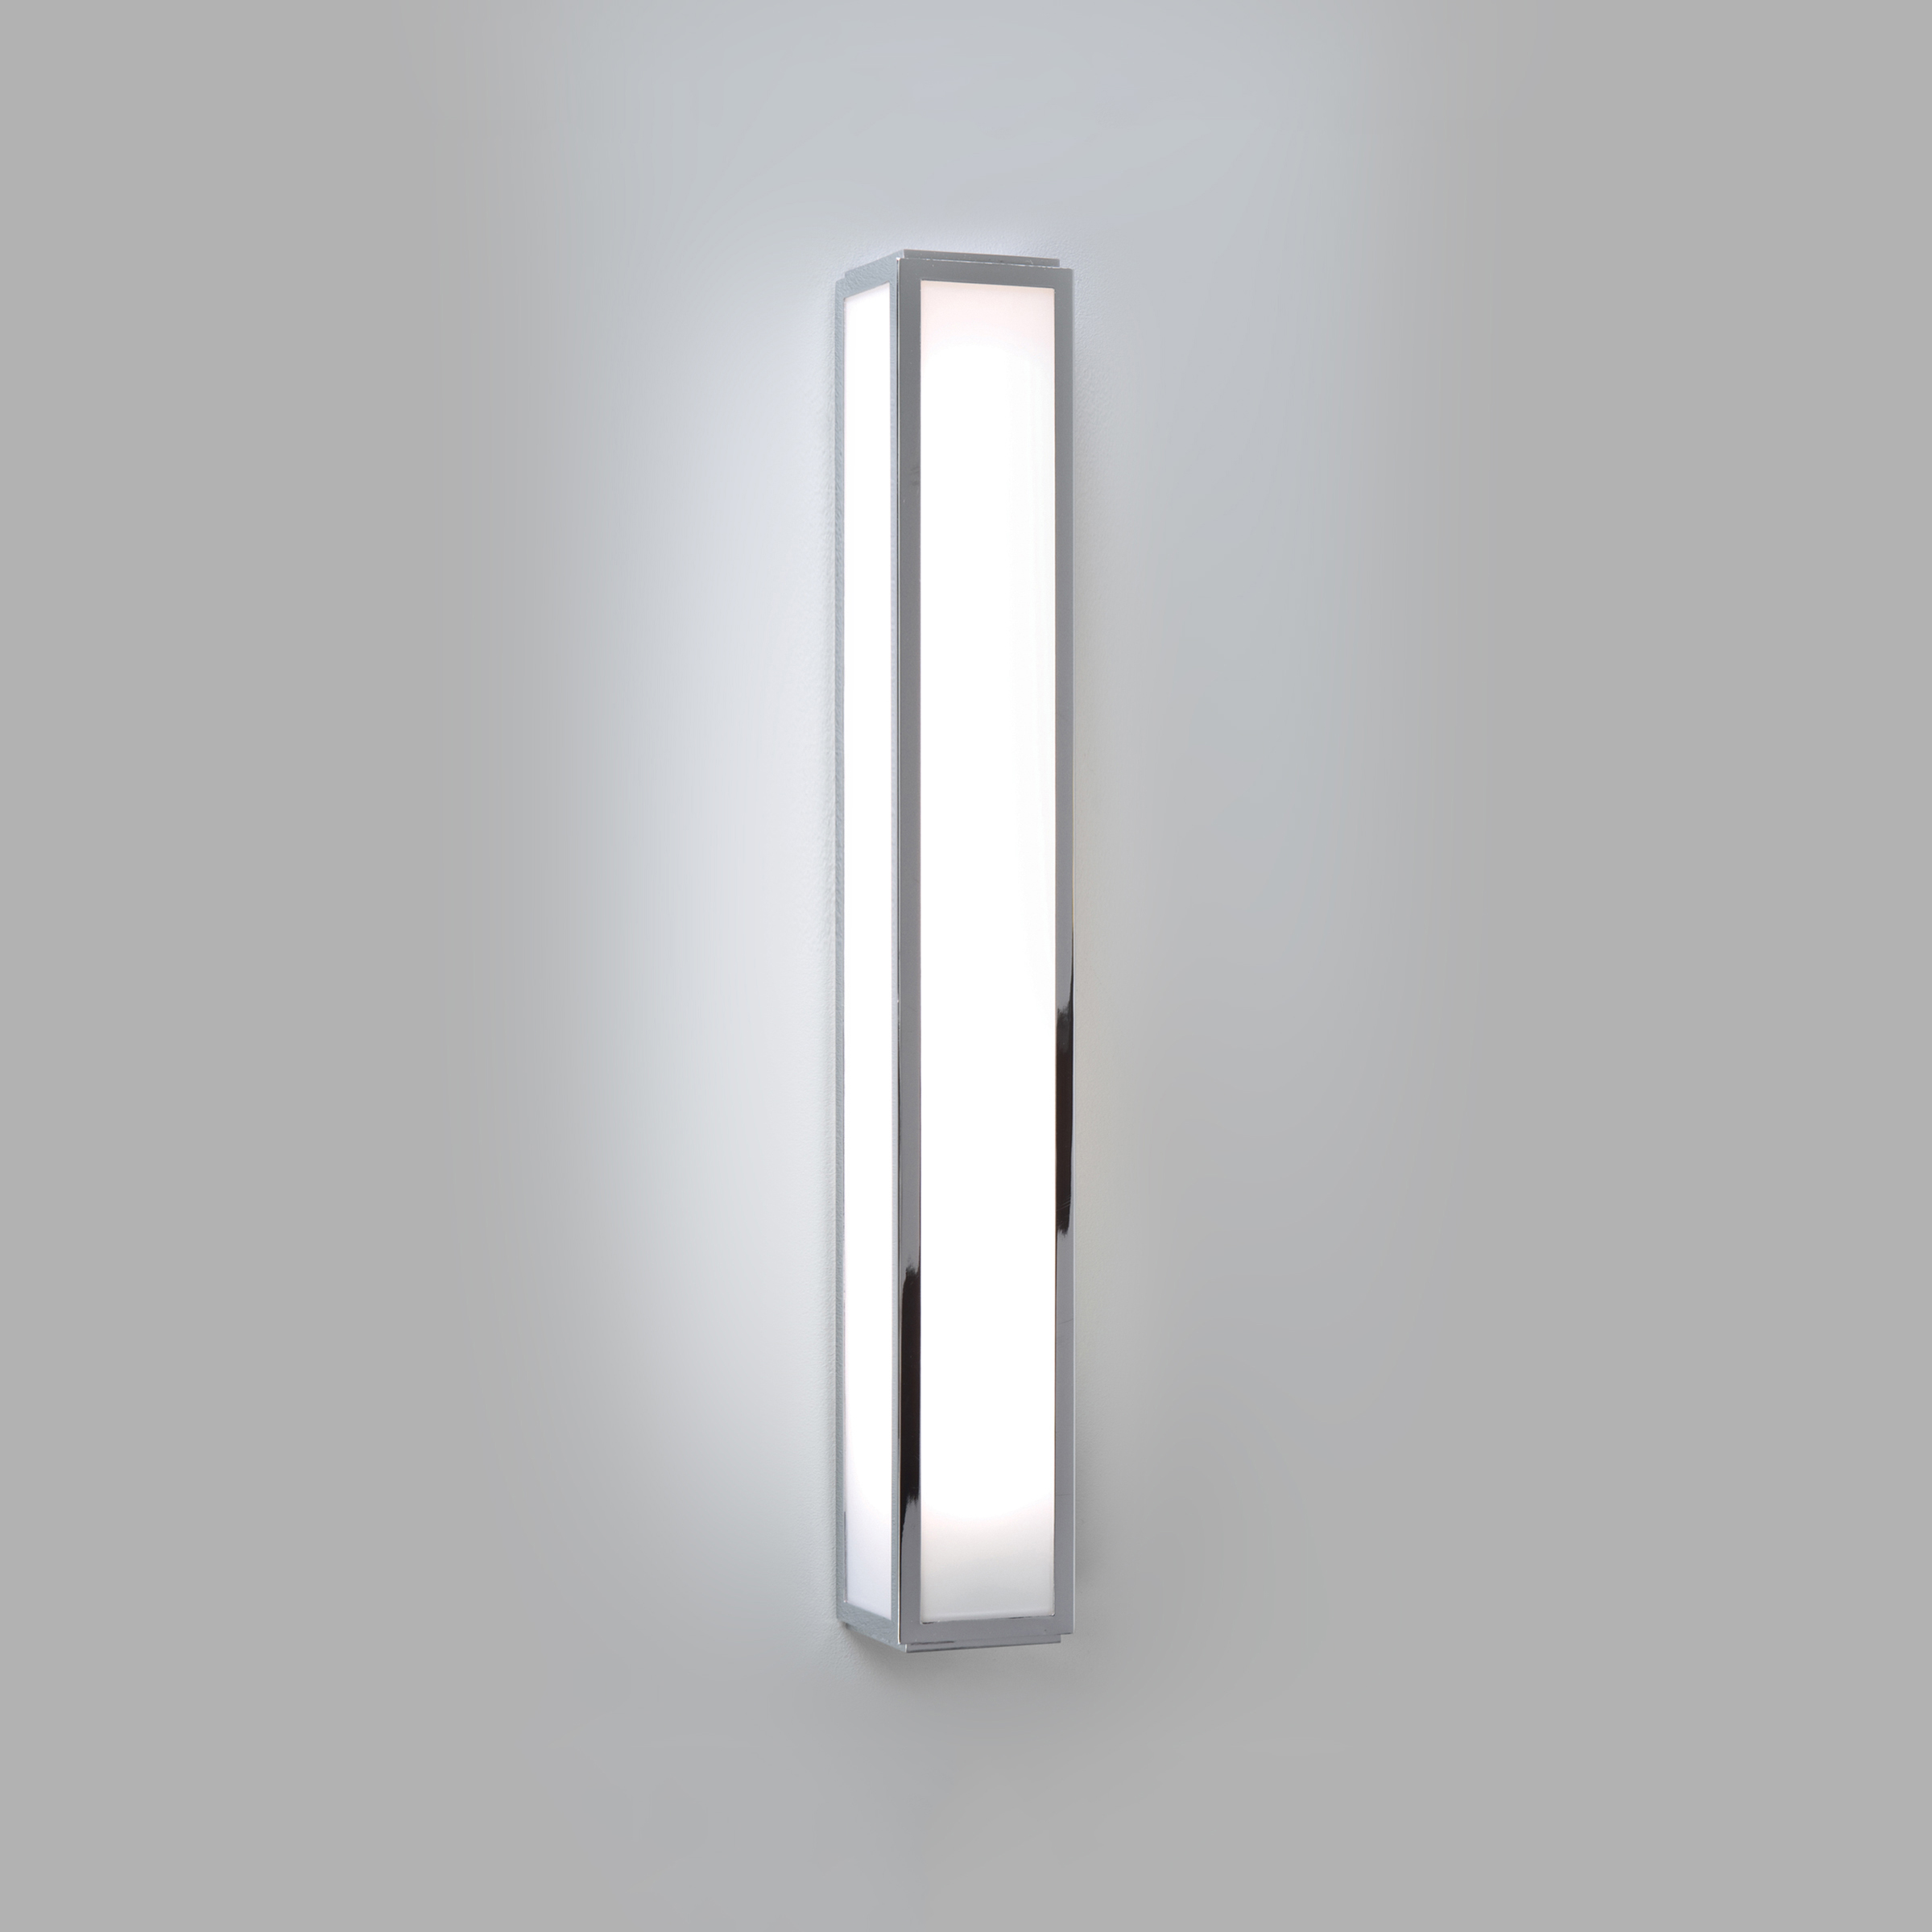 Astro 1121002 Mashiko 500 Wall Light